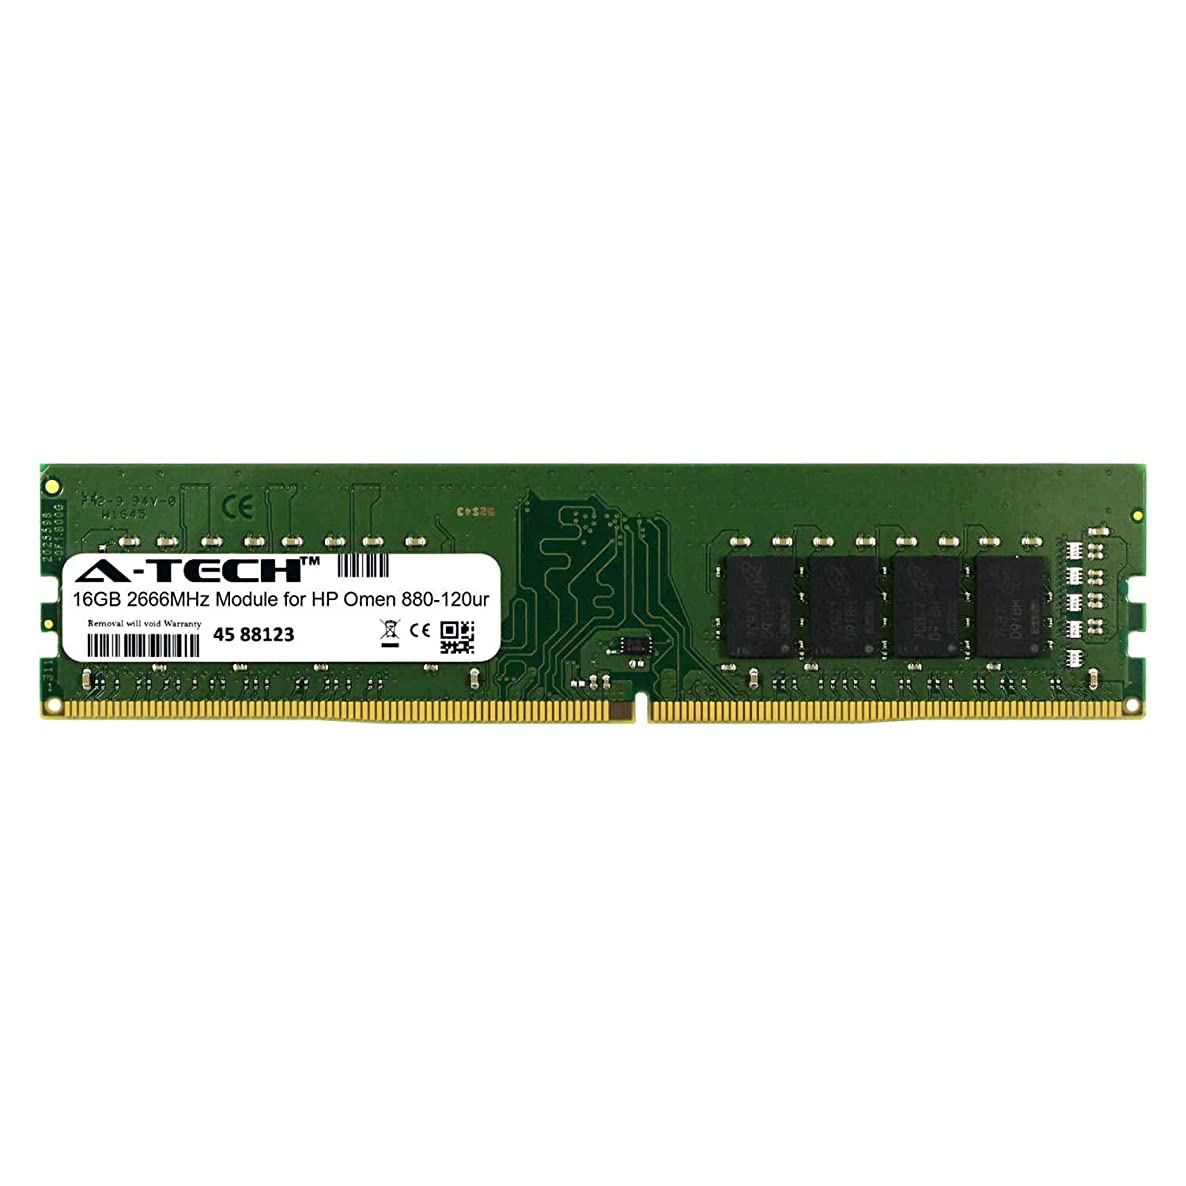 A-Tech 16GB Module for HP Omen 880-120ur Desktop & Workstation Motherboard Compatible DDR4 2666Mhz Memory Ram (ATMS282739A25823X1)